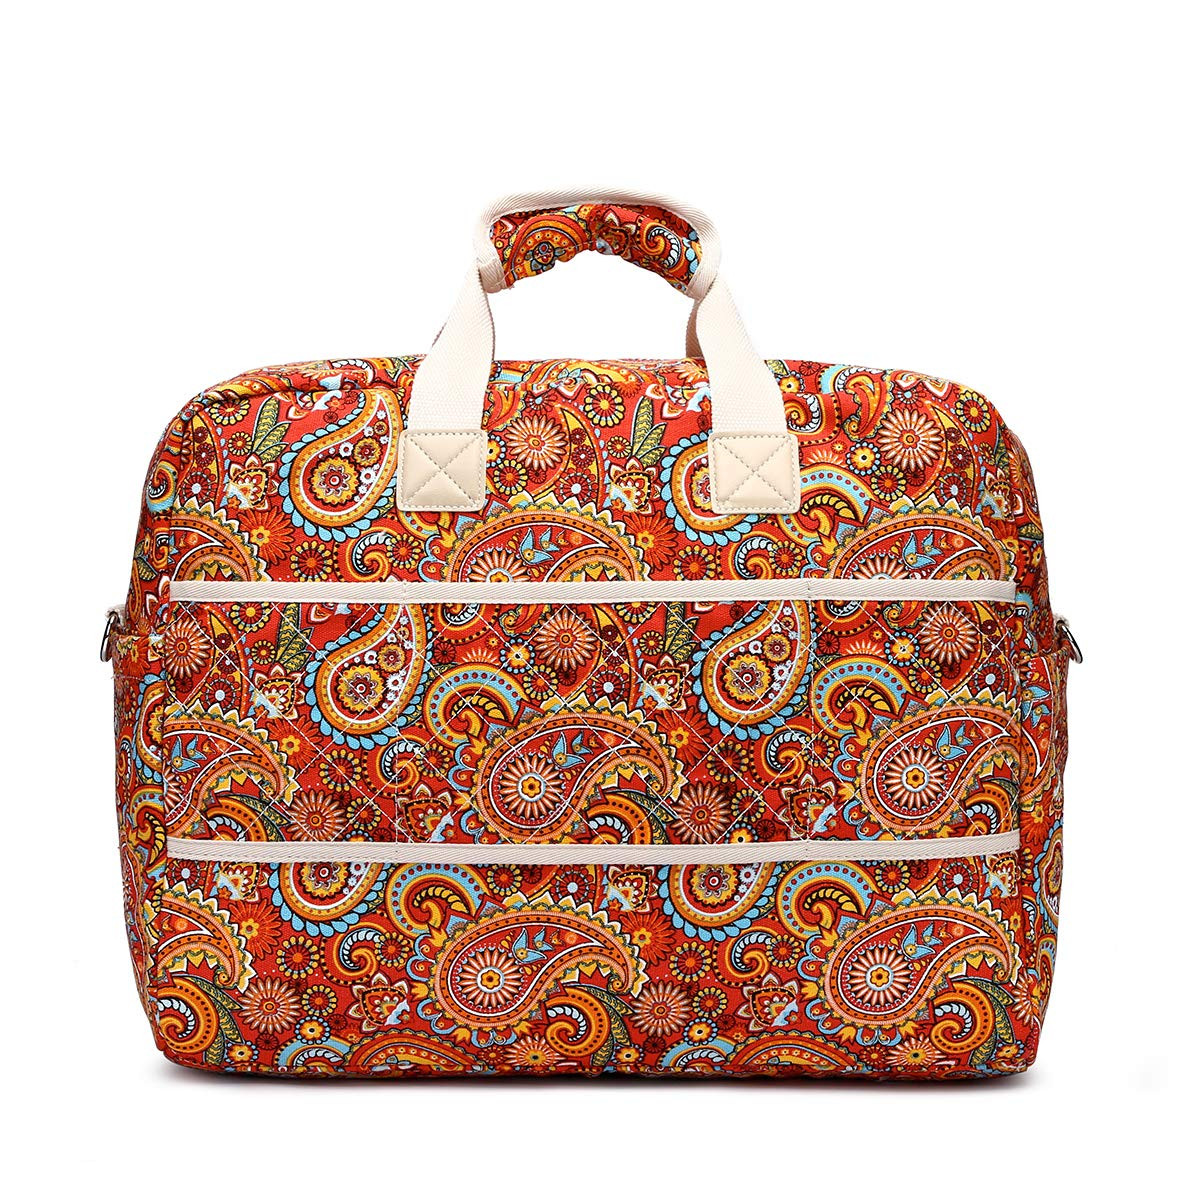 Malirona Women's Canvas Overnight Weekender Bag Carry On Travel Duffel Tote Bag Bohemian Flower (Red Flower) by Malirona (Image #4)